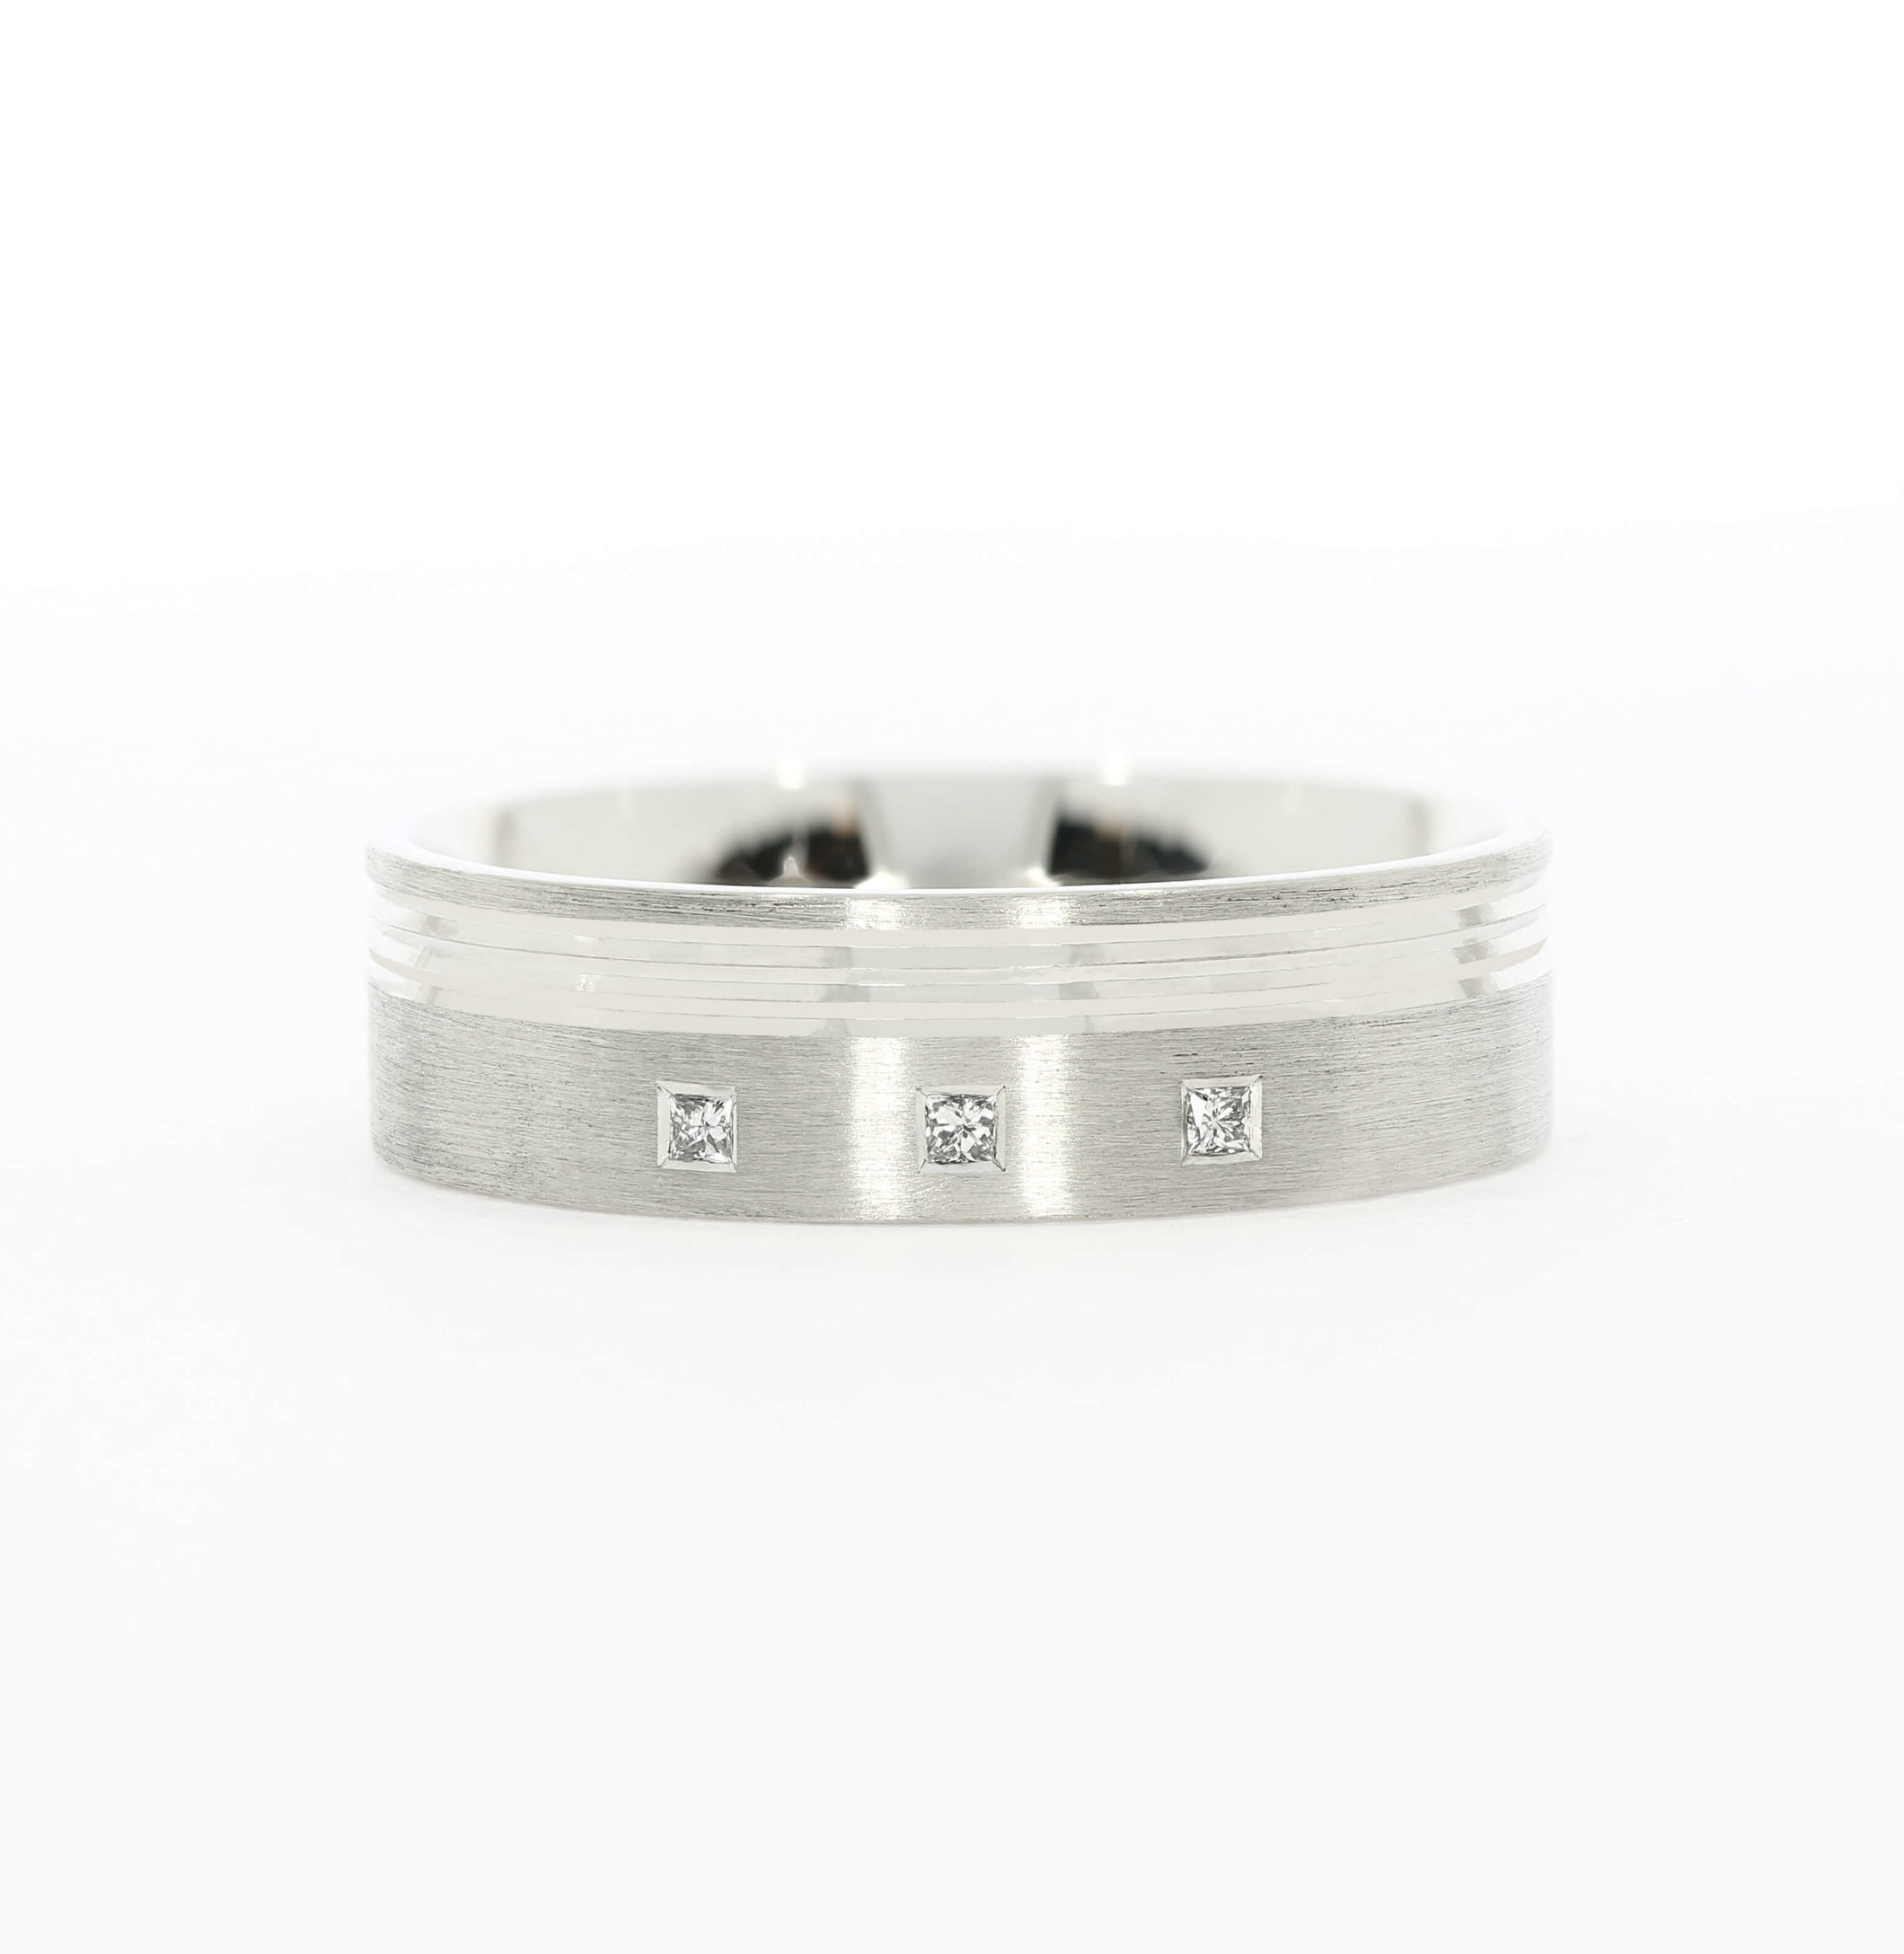 Adding diamonds to a thick band is a great way to add your own personality to a design. Bespoke ring by Queensmith